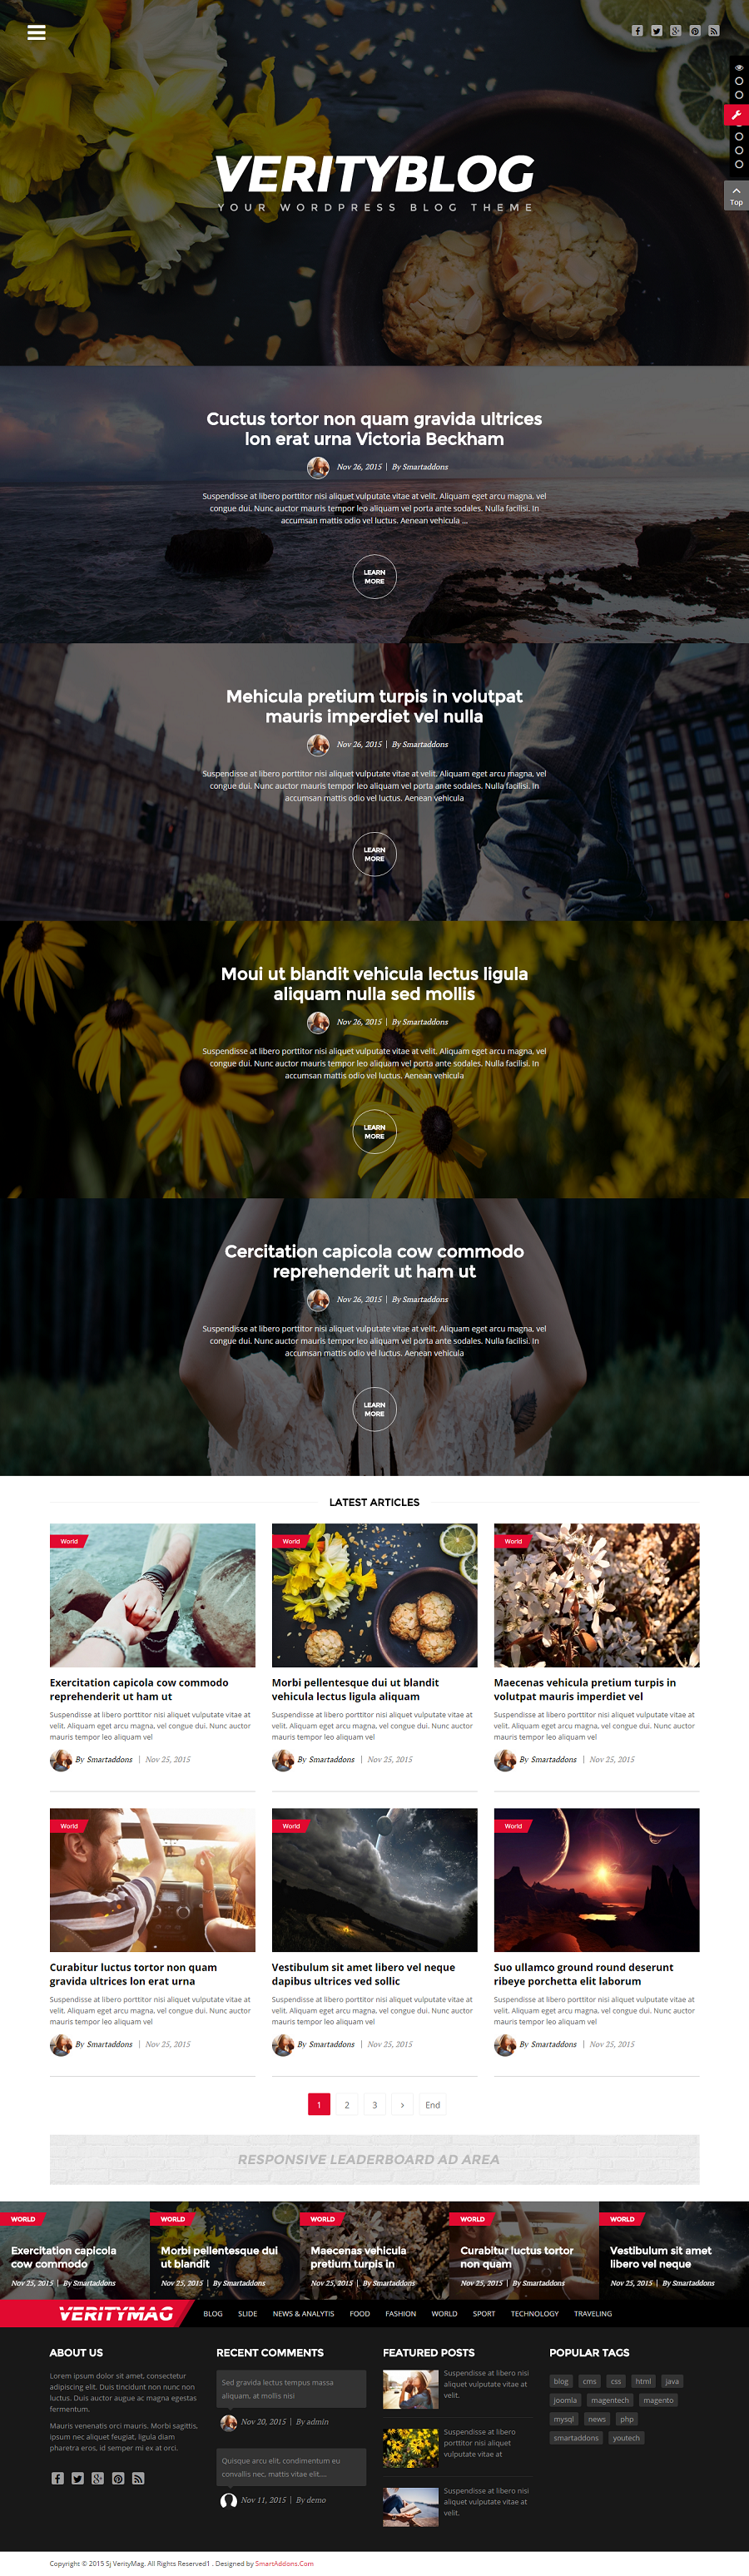 SJ VerityMag - Free Responsive Joomla news magazine Template - 04_home3.png